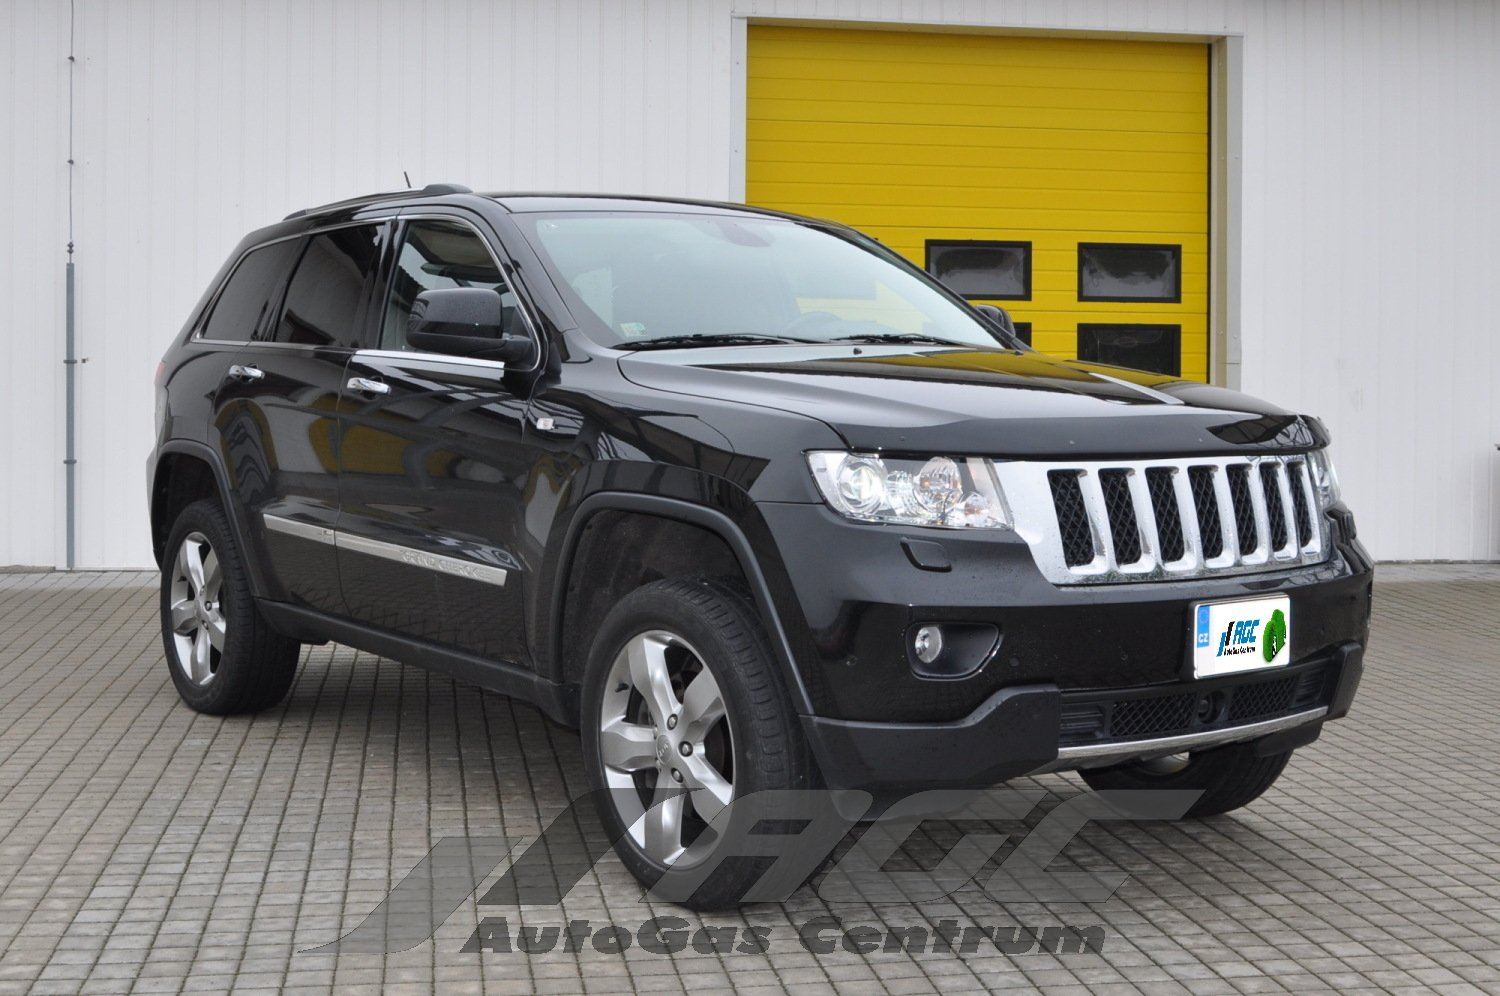 conversion lpg jeep grand cherokee 5 7 jeep photo gallery conversion autogas centrum. Black Bedroom Furniture Sets. Home Design Ideas